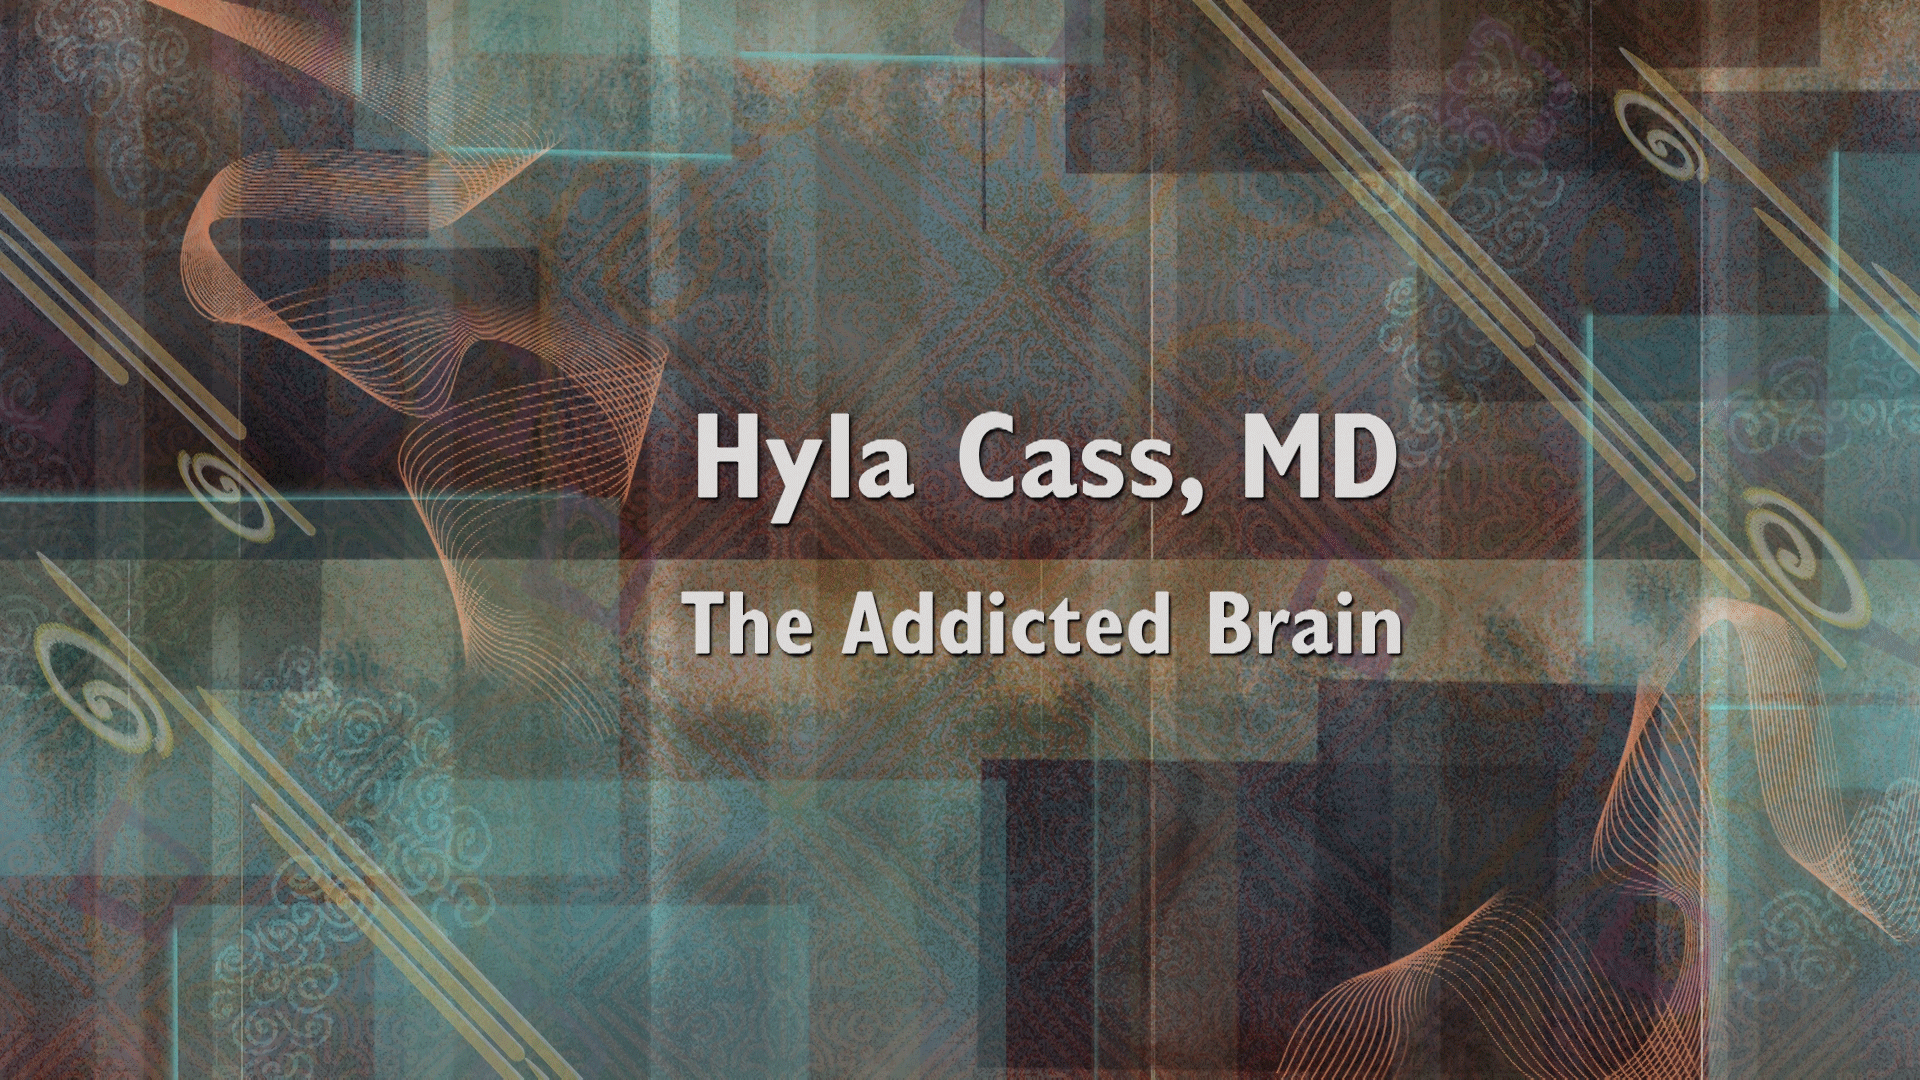 The Addicted Brain Hyla Cass, MD